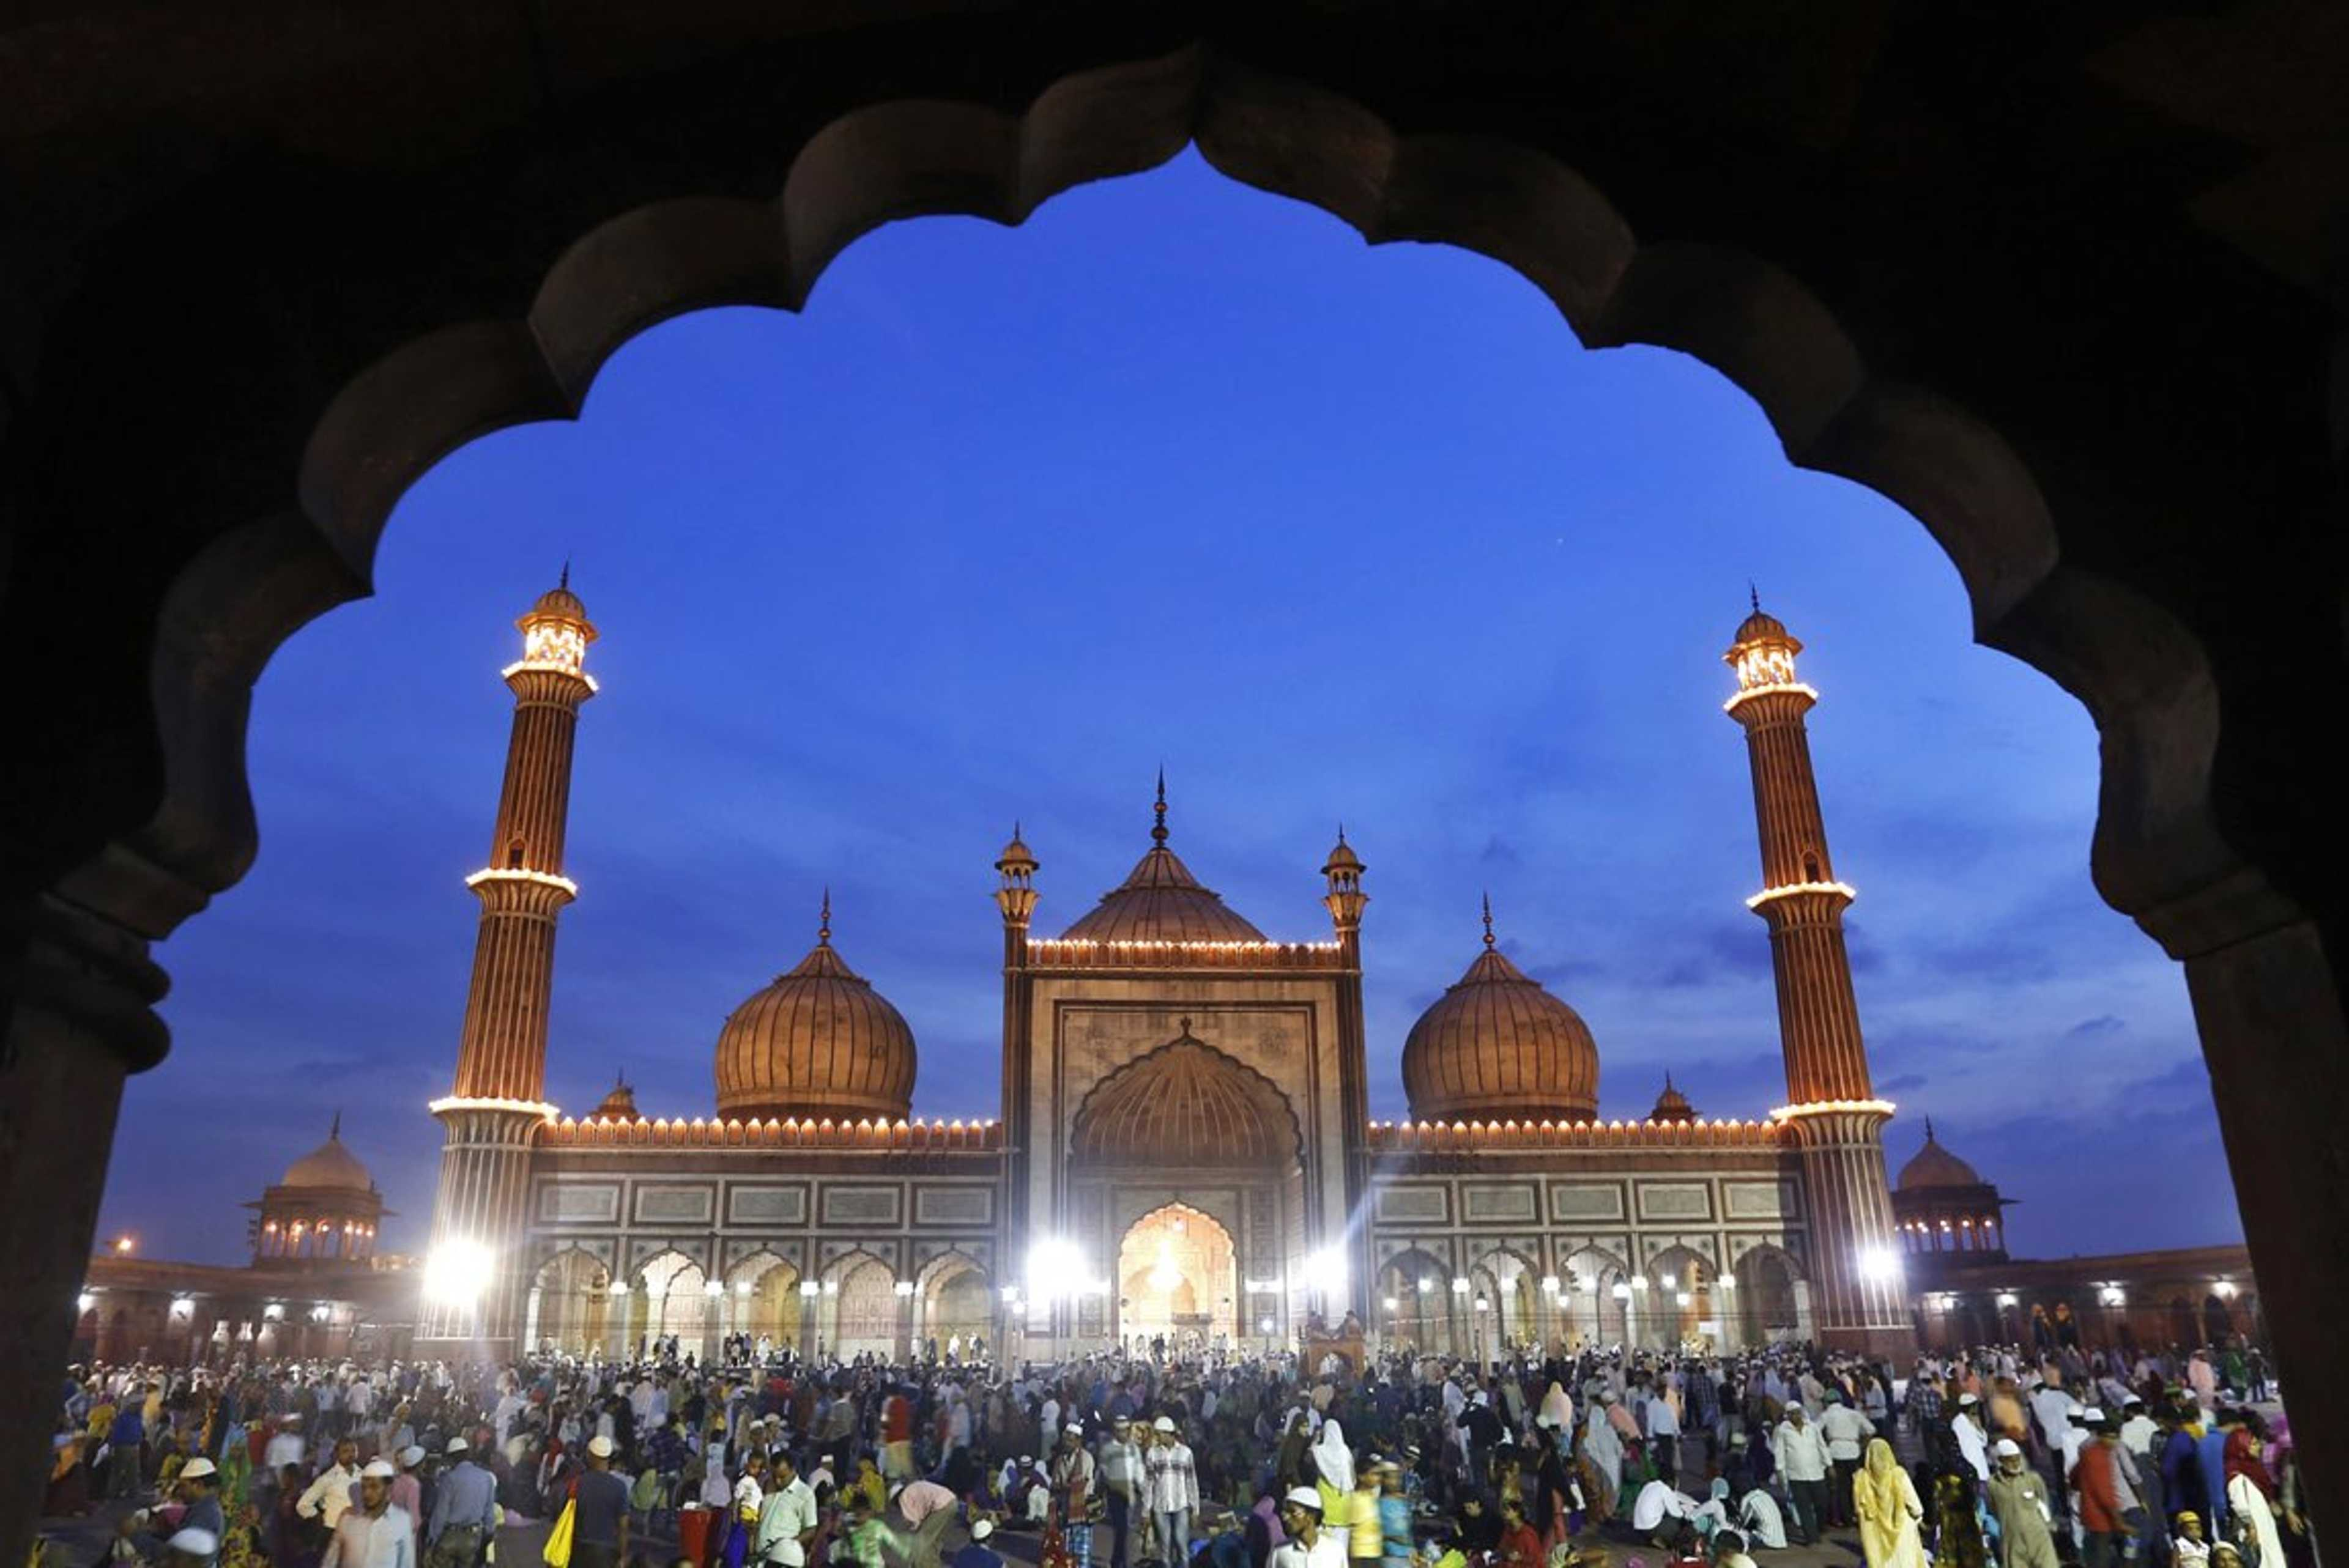 muslims-gather-after-having-their-iftar-breaking-fast-meal-jama-masjid-grand-mosque-old